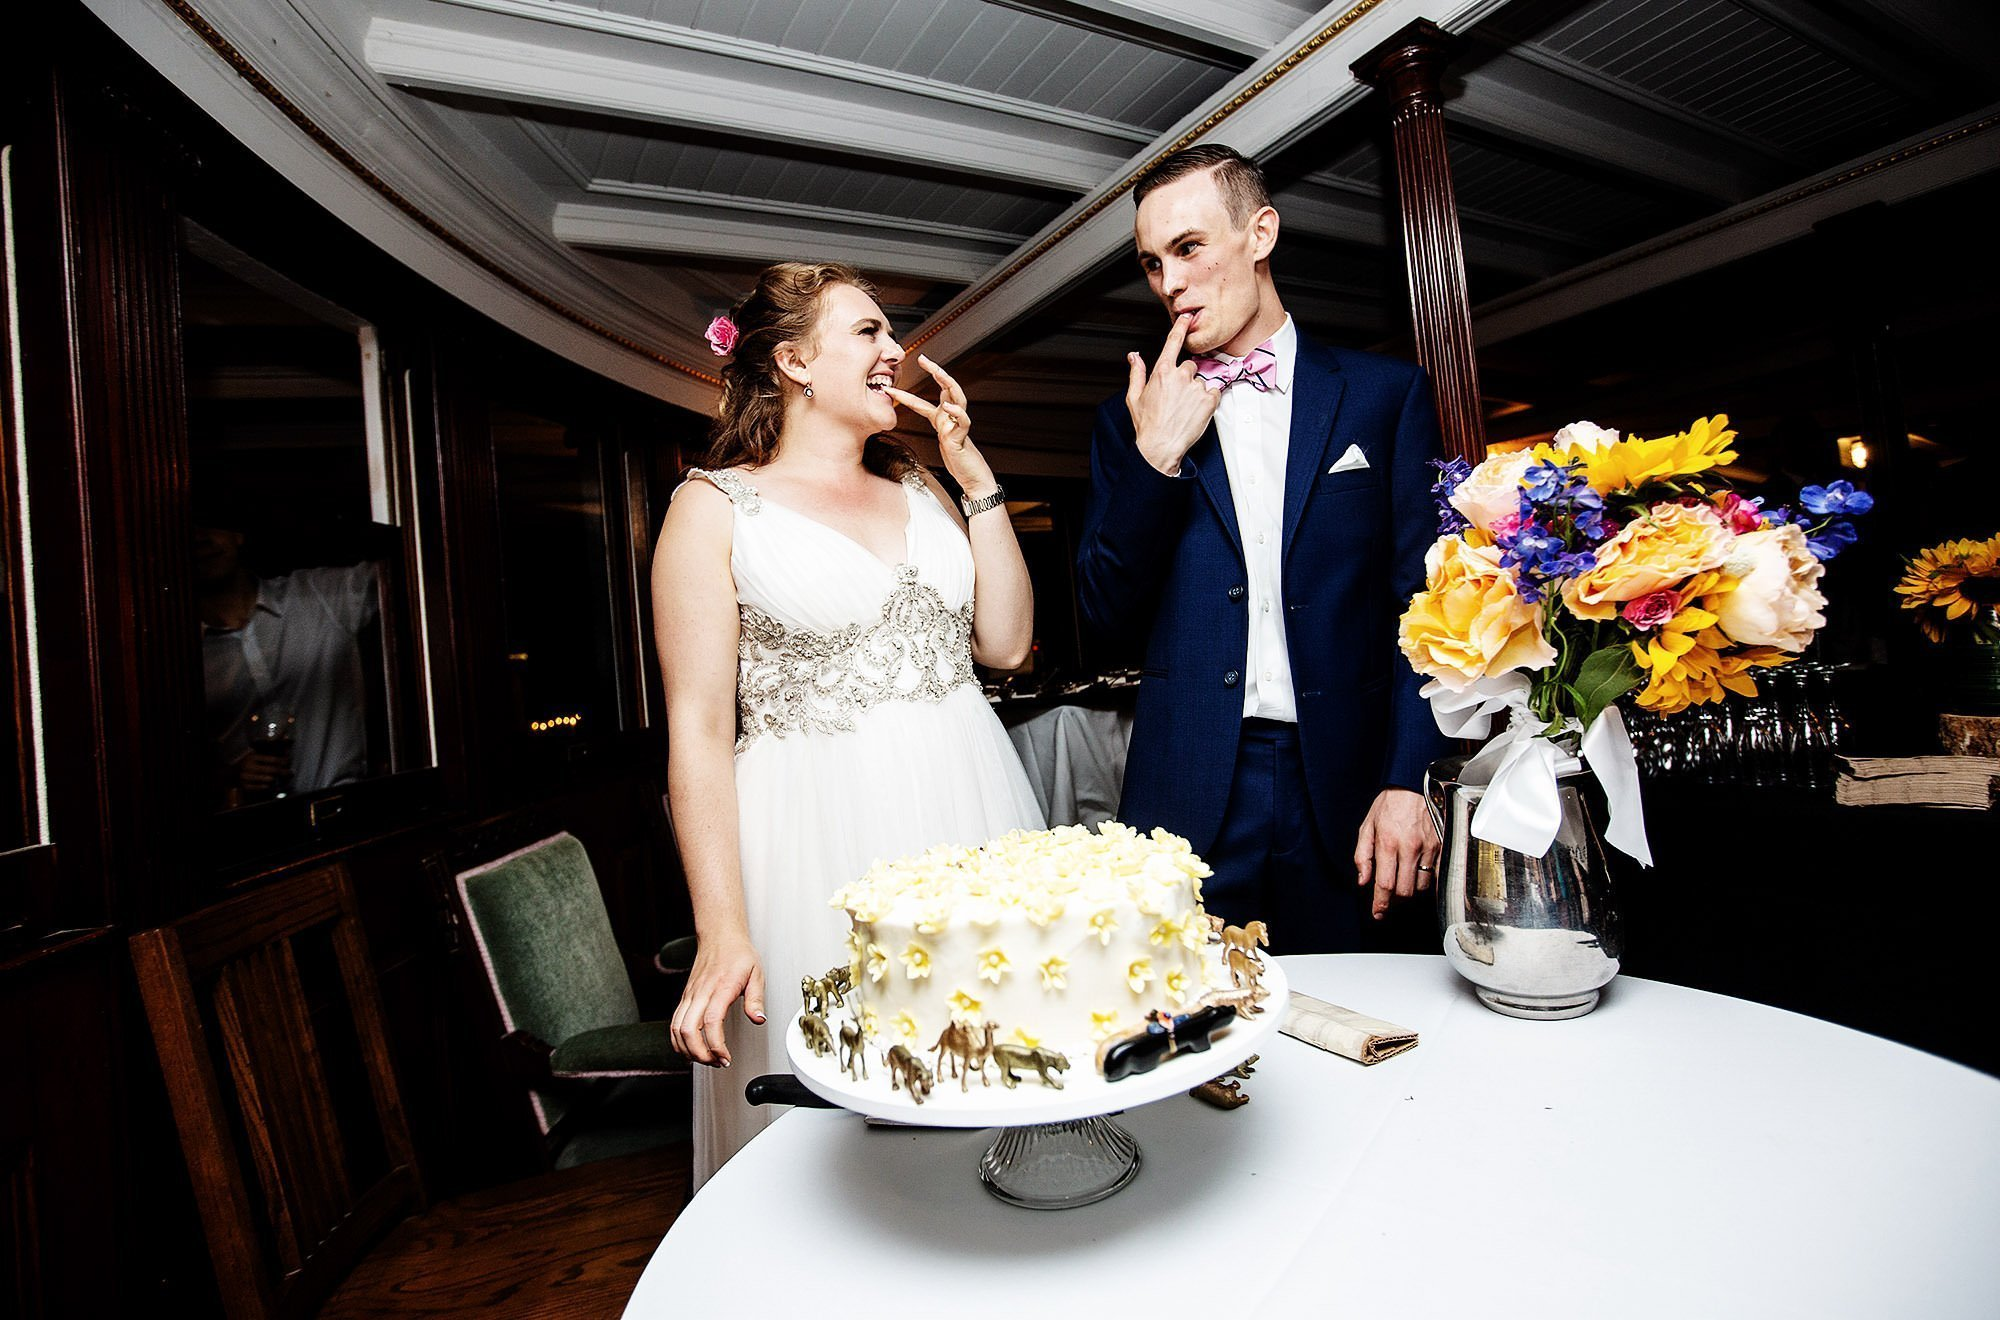 Shelburne Museum Wedding  I  The bride and groom cut their wedding cake during the reception on the Ticonderoga.